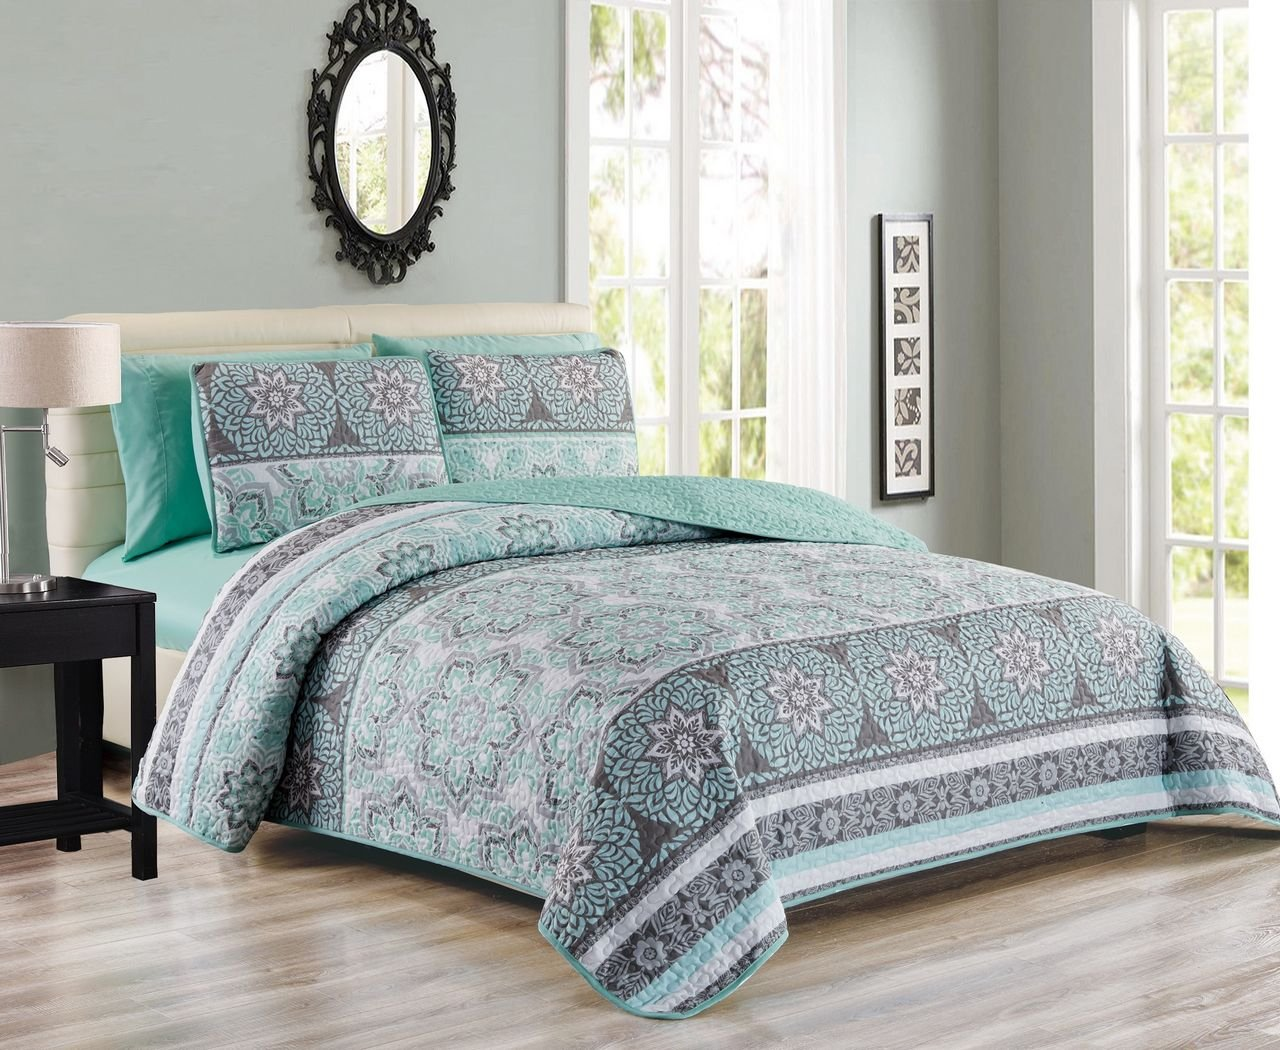 KingLinen 6 Piece Medallion Floral Patchwork Reversible Bedspread/Quilt with Sheet Set Queen